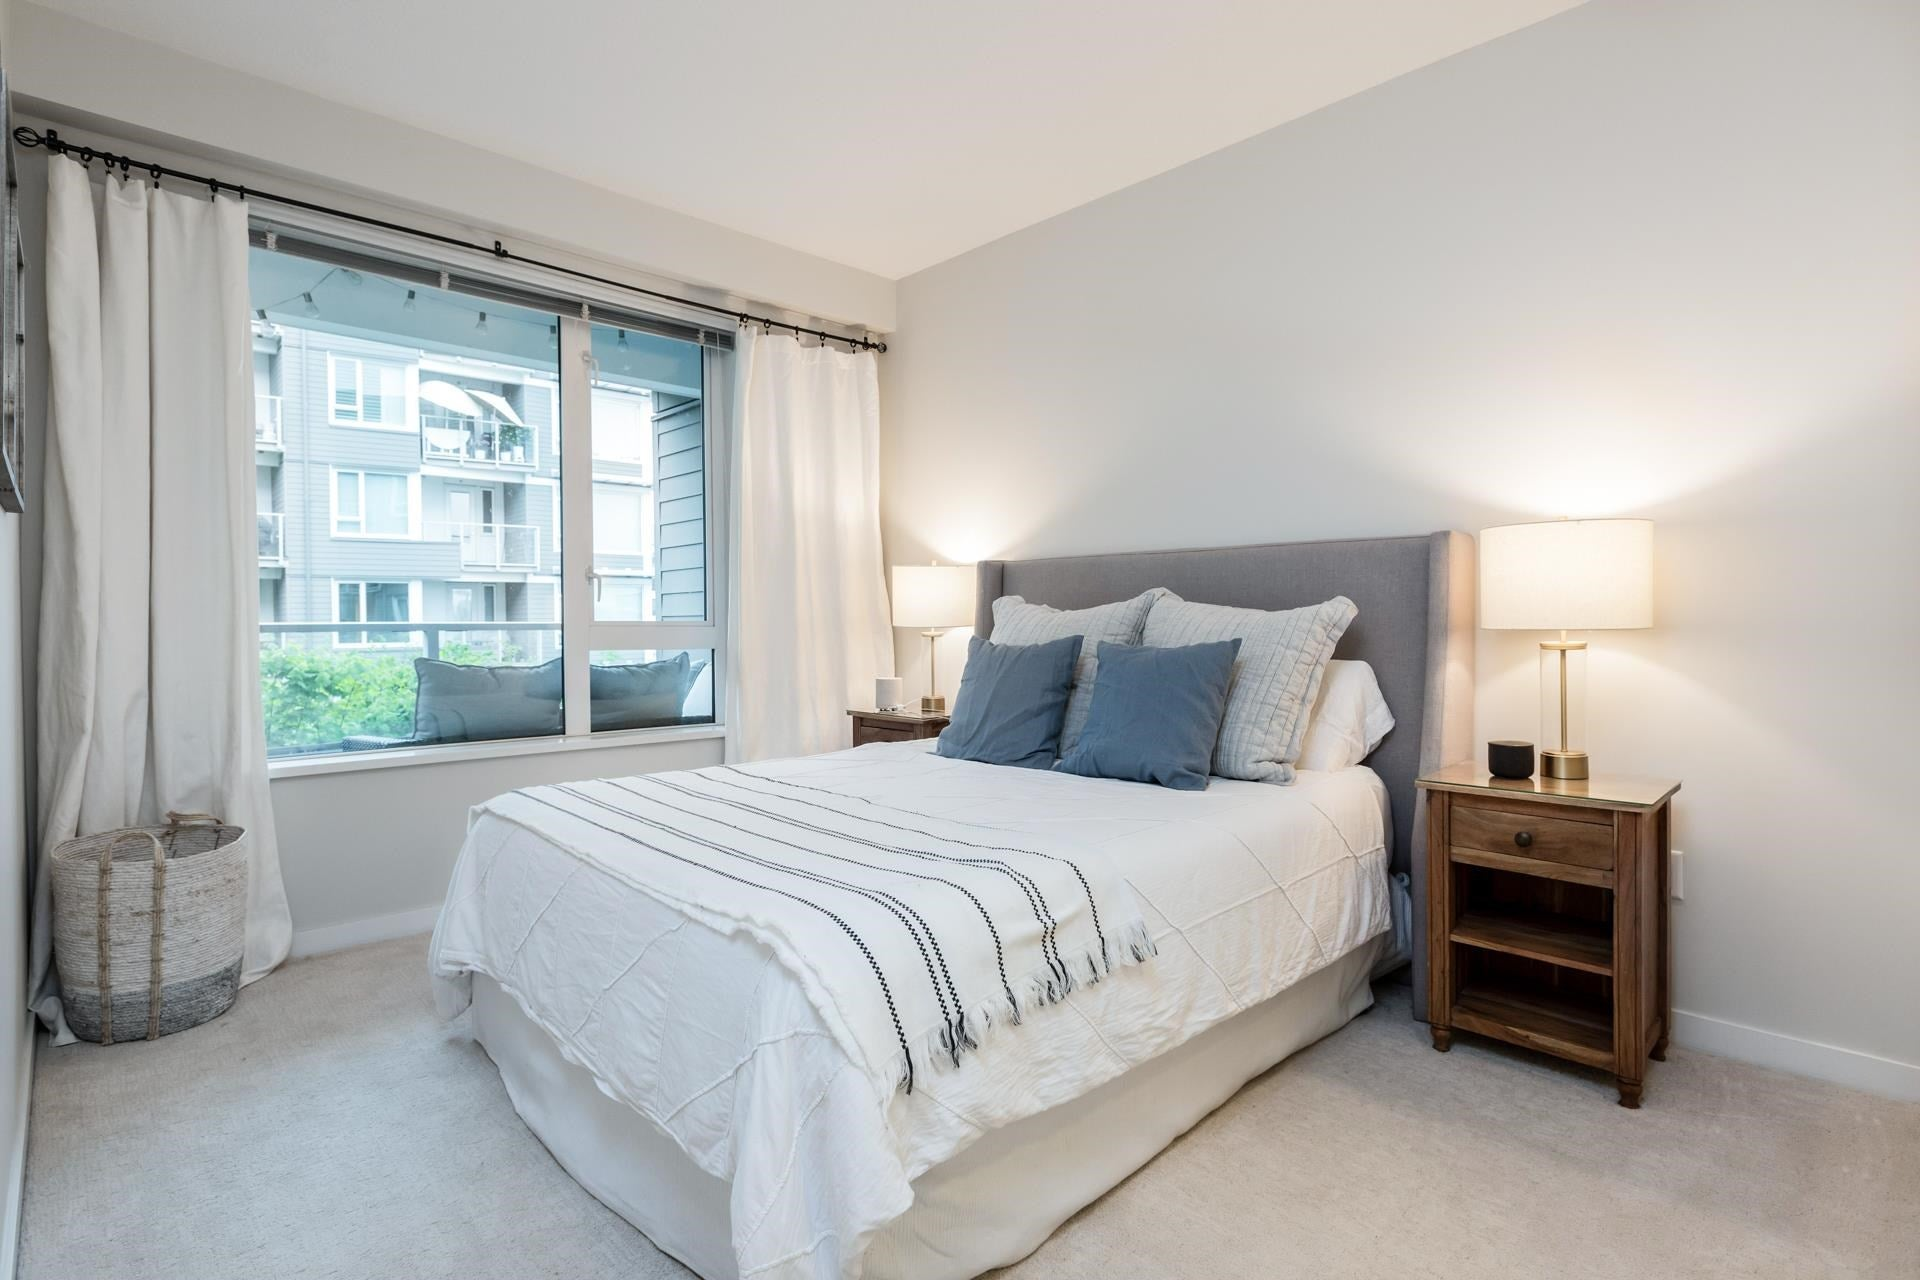 207 255 W 1ST STREET - Lower Lonsdale Apartment/Condo for sale, 2 Bedrooms (R2603882) - #16